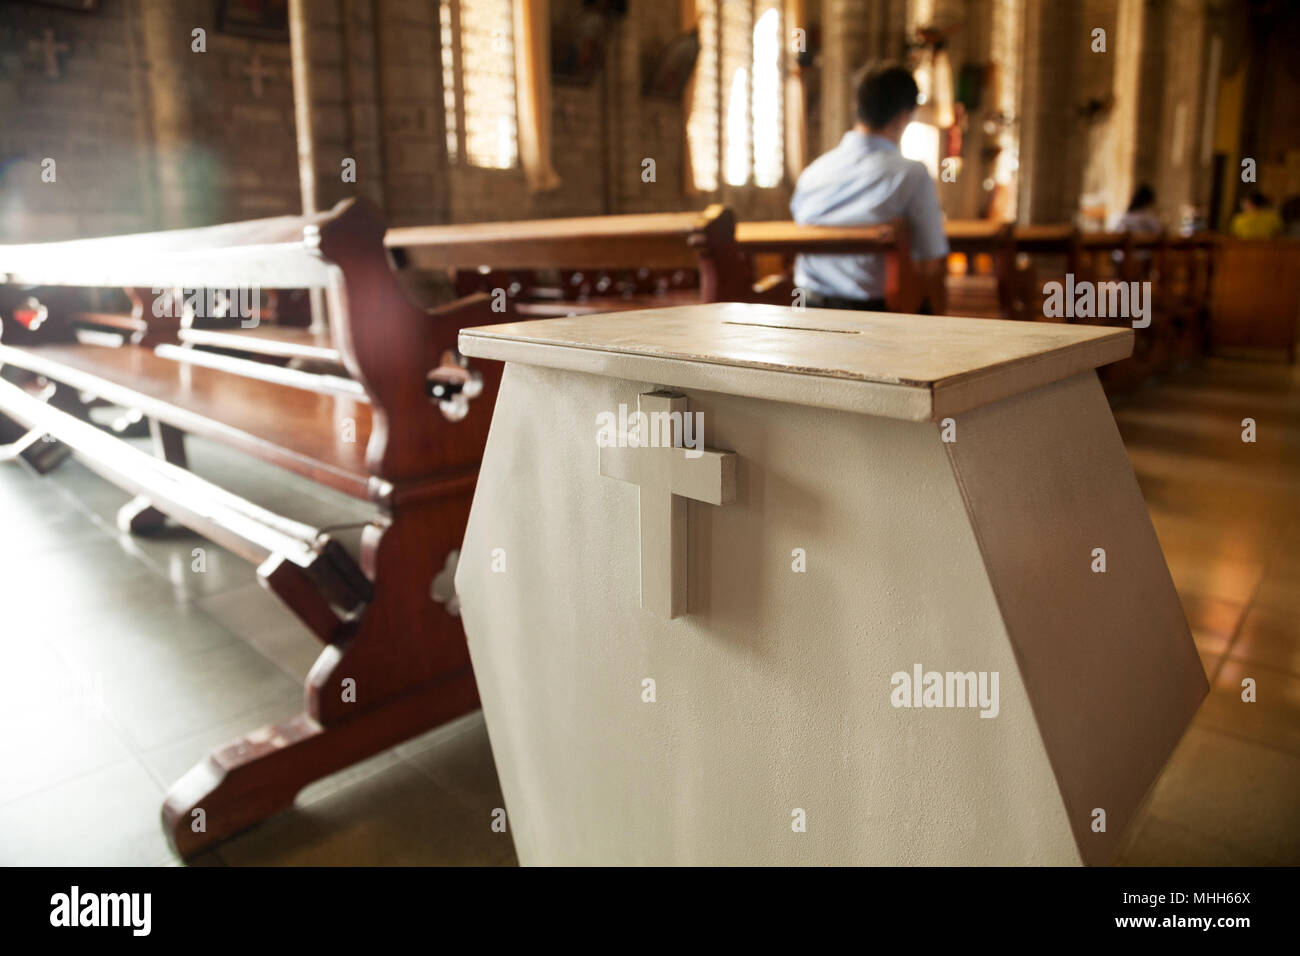 White donation box with a cross on it at a Christian church.  Collection box for generous offertory standing among pews at a Catholic temple - Stock Image